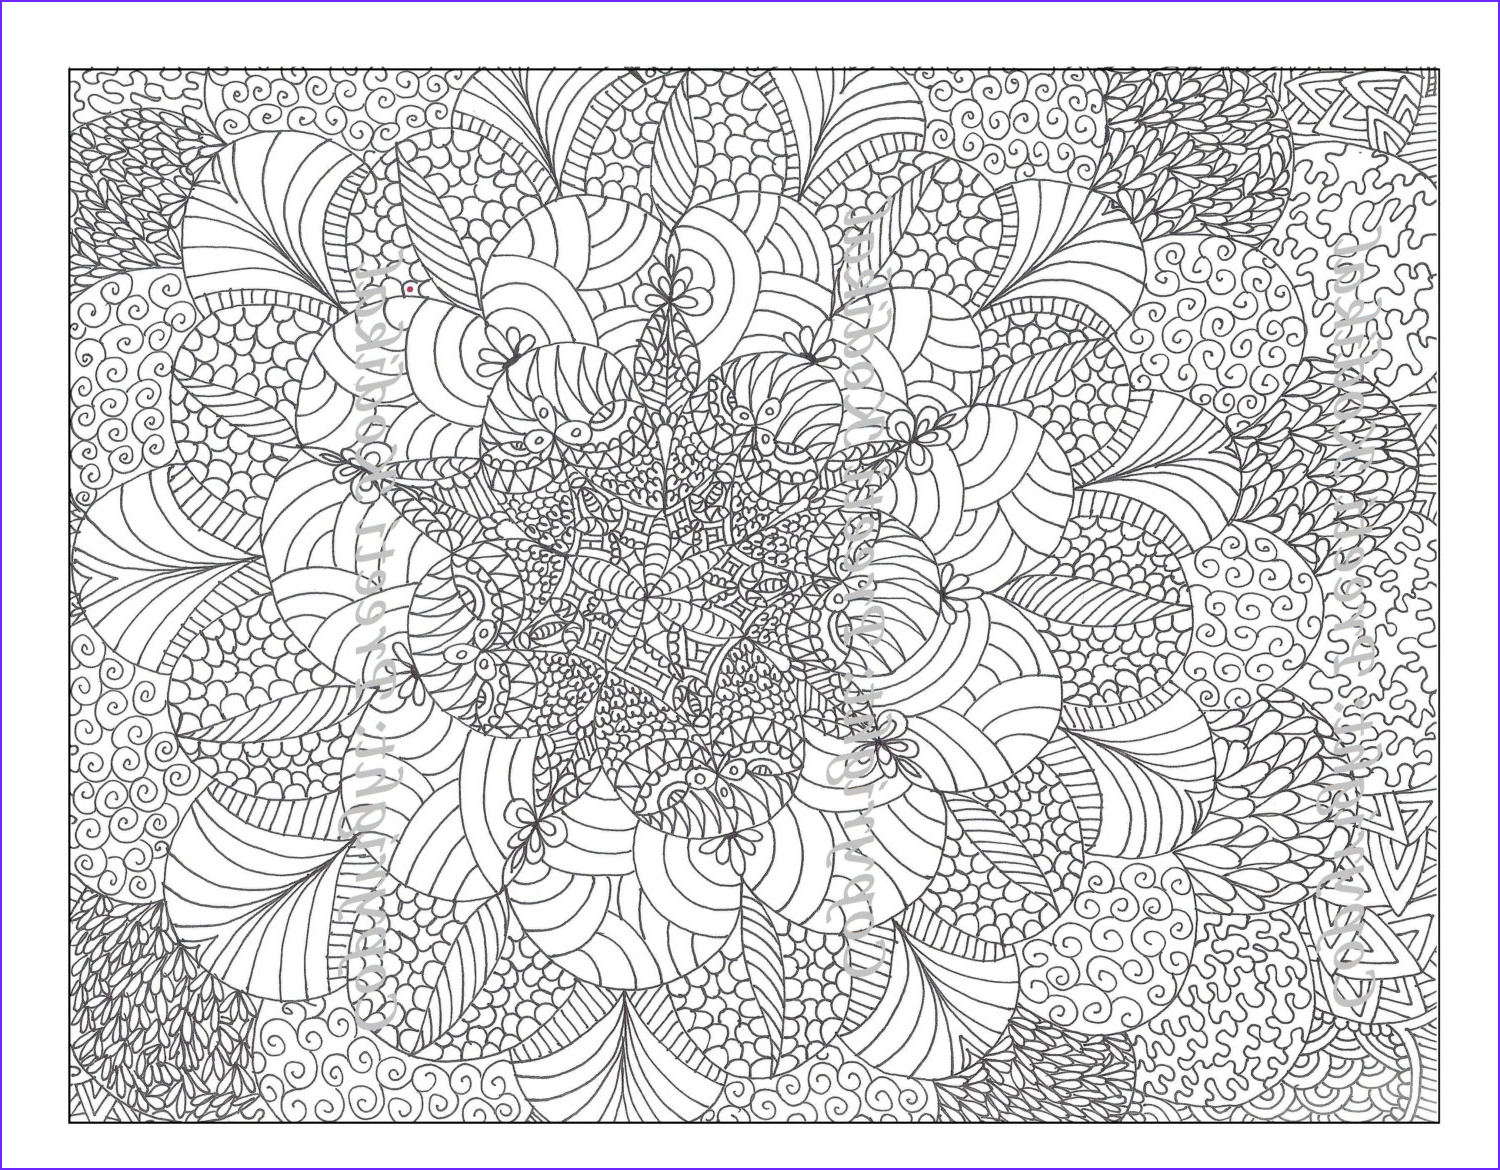 Printable Coloring Pages for Adults Abstract Awesome Stock Free Printable Abstract Coloring Pages for Adults